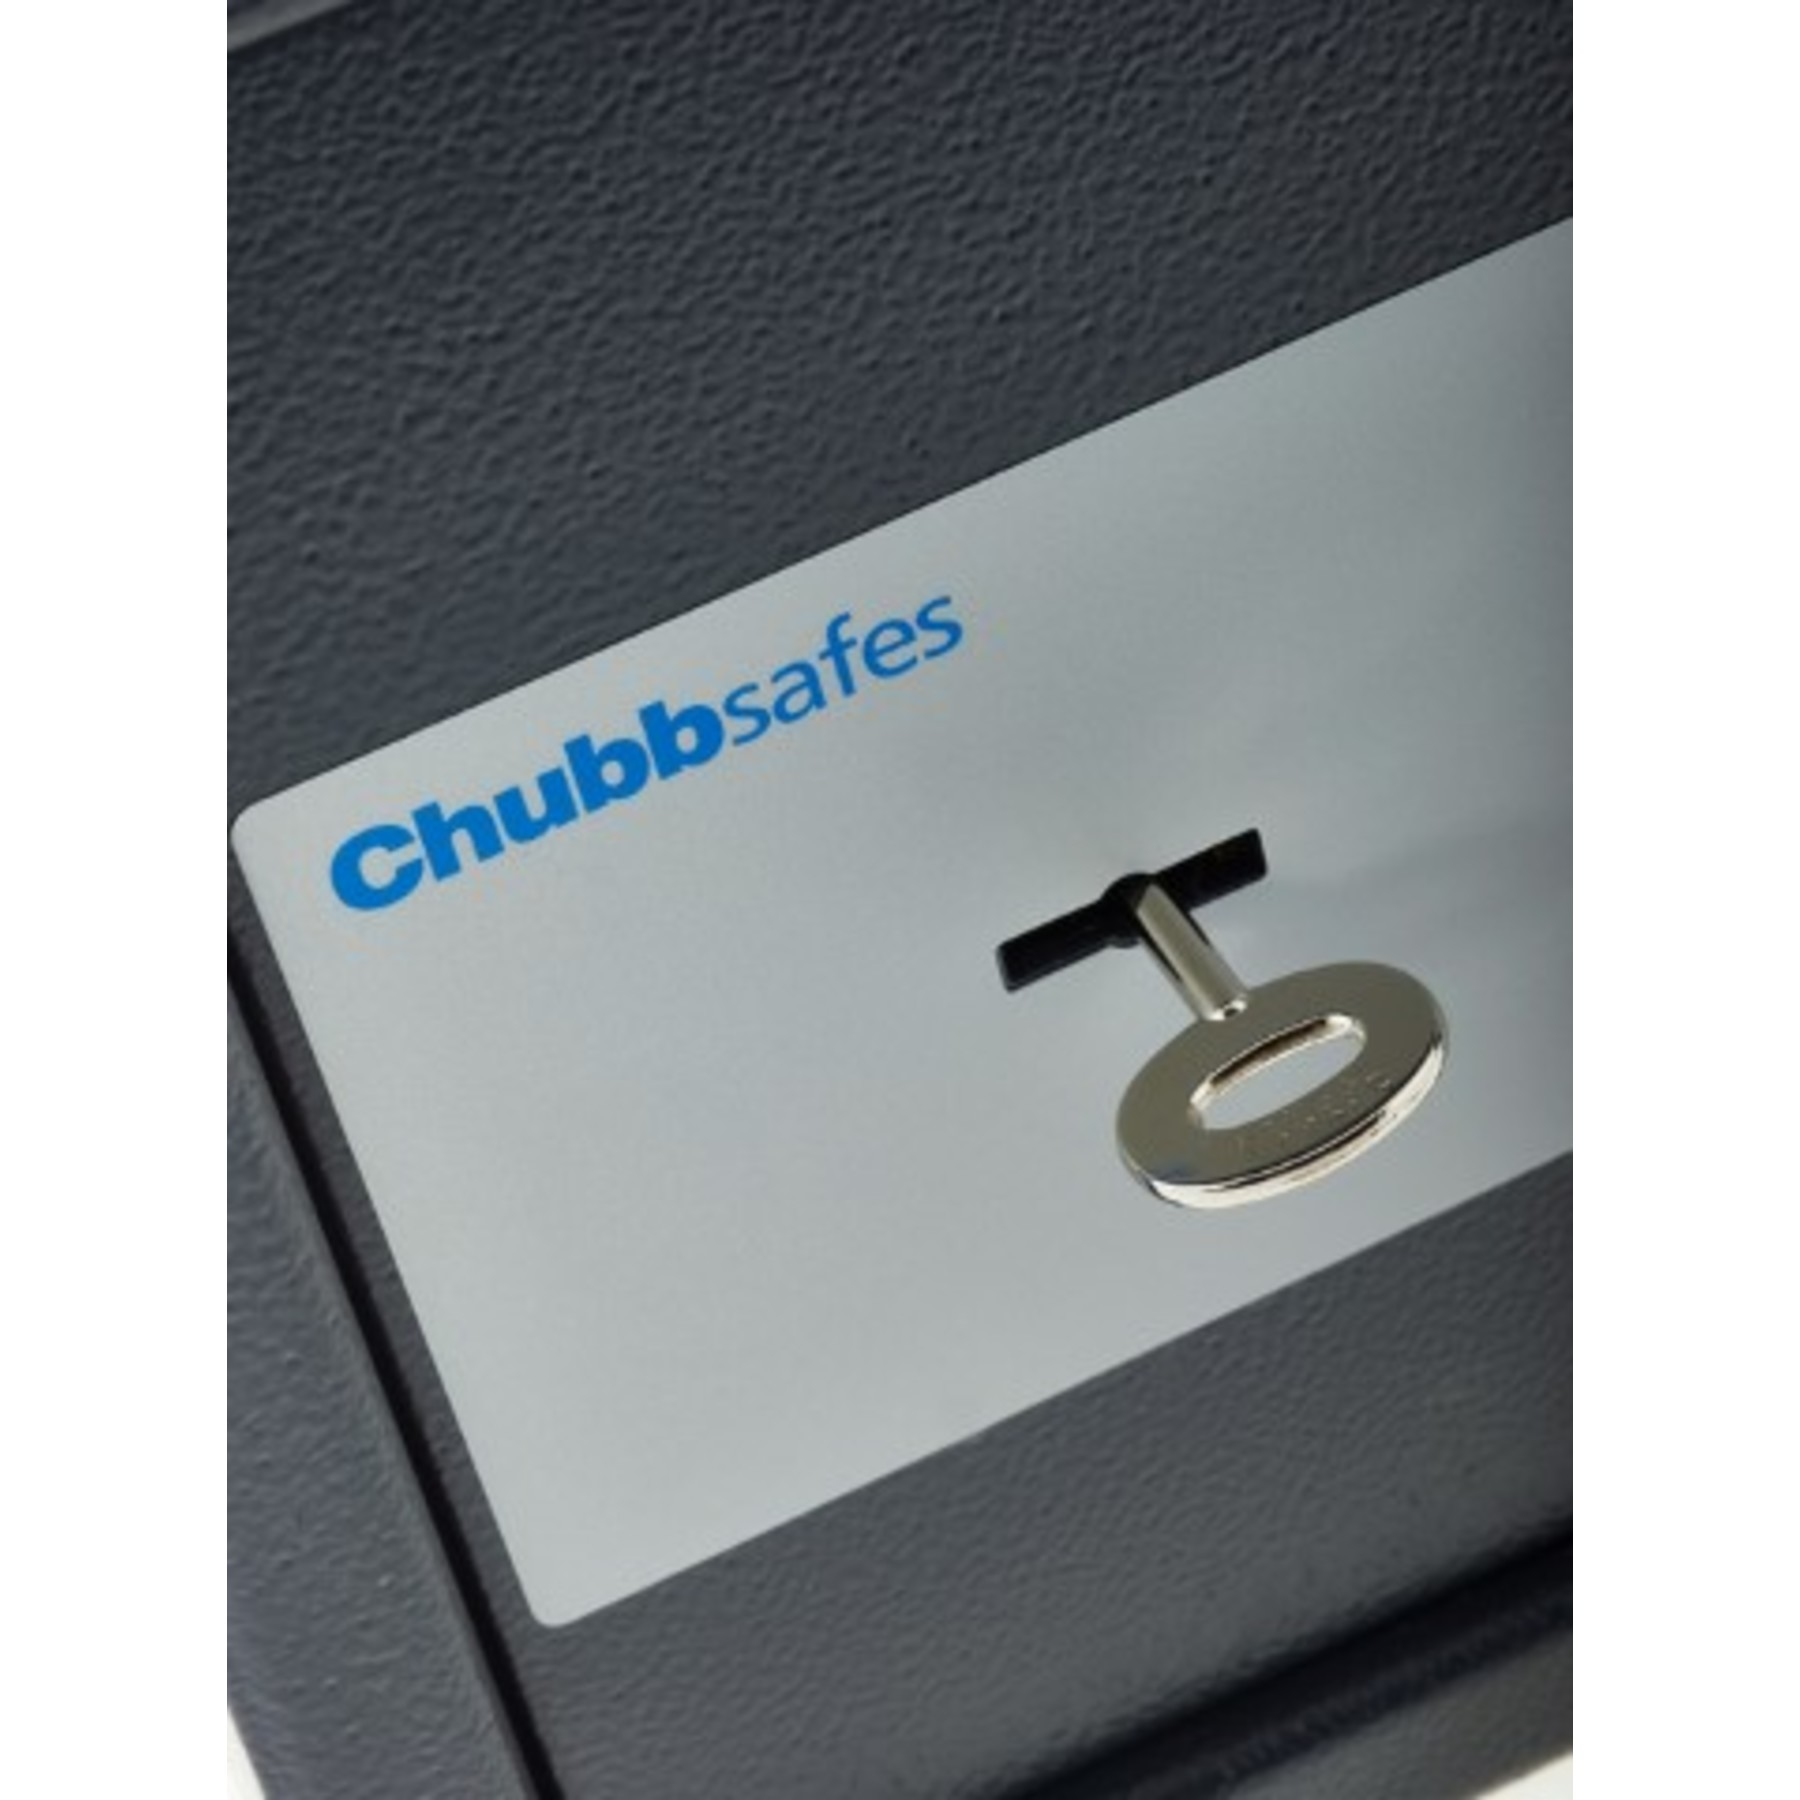 Chubbsafes Elements Air 15K Home and Office Safe | All Safes